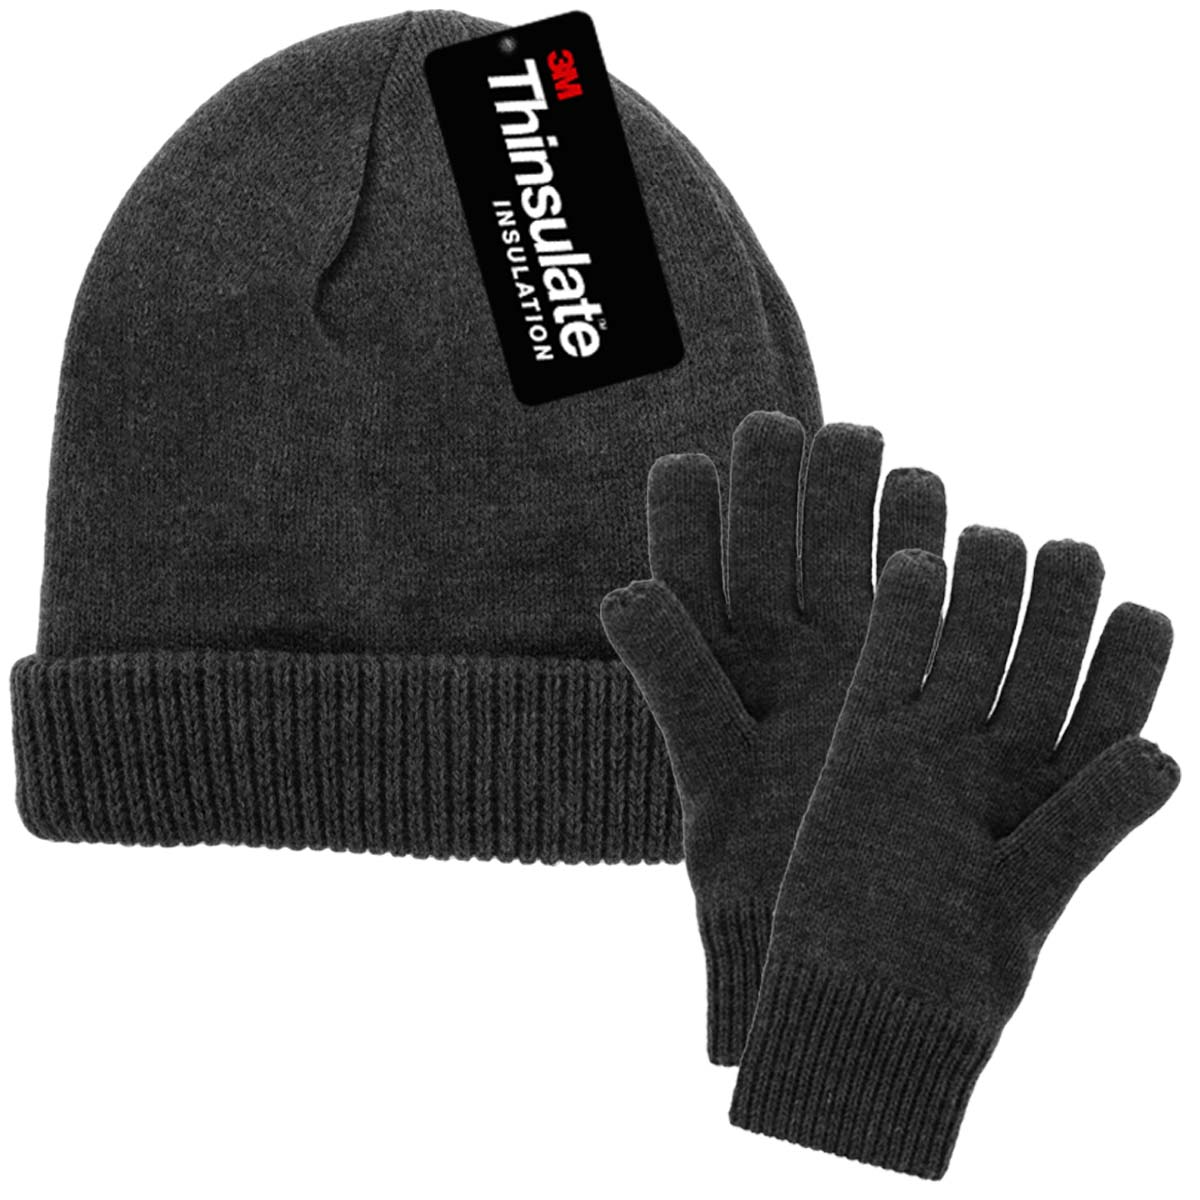 af42ac35631 DG Hill - DG Hill Mens Winter Hat And Gloves Set with 3M Thinsulate Fleece  Lining Beanie - Walmart.com